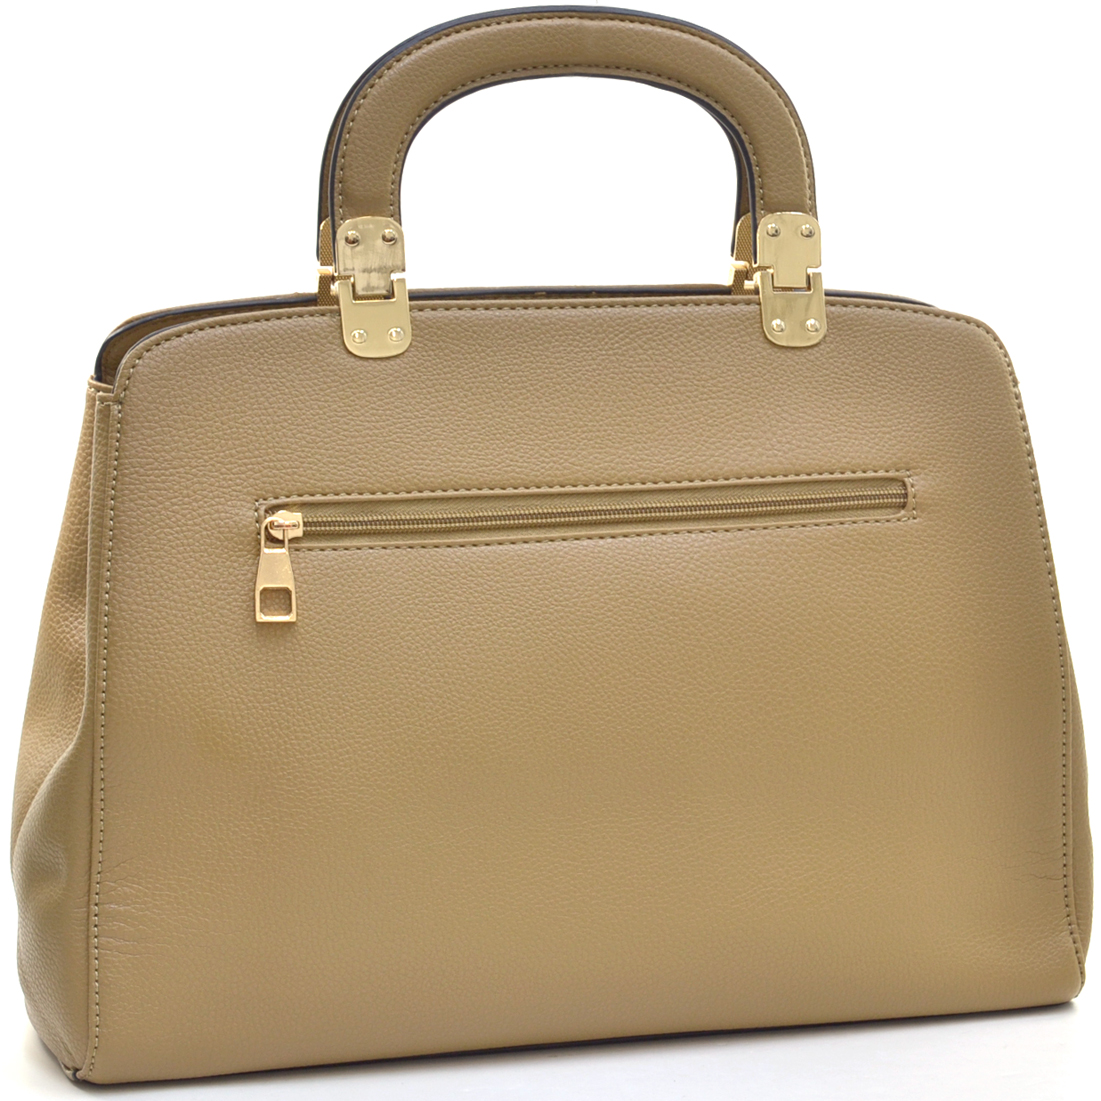 Dasein® Emblem Metal Hinge Handle Tapered Briefcase w/Removable Shoulder Strap